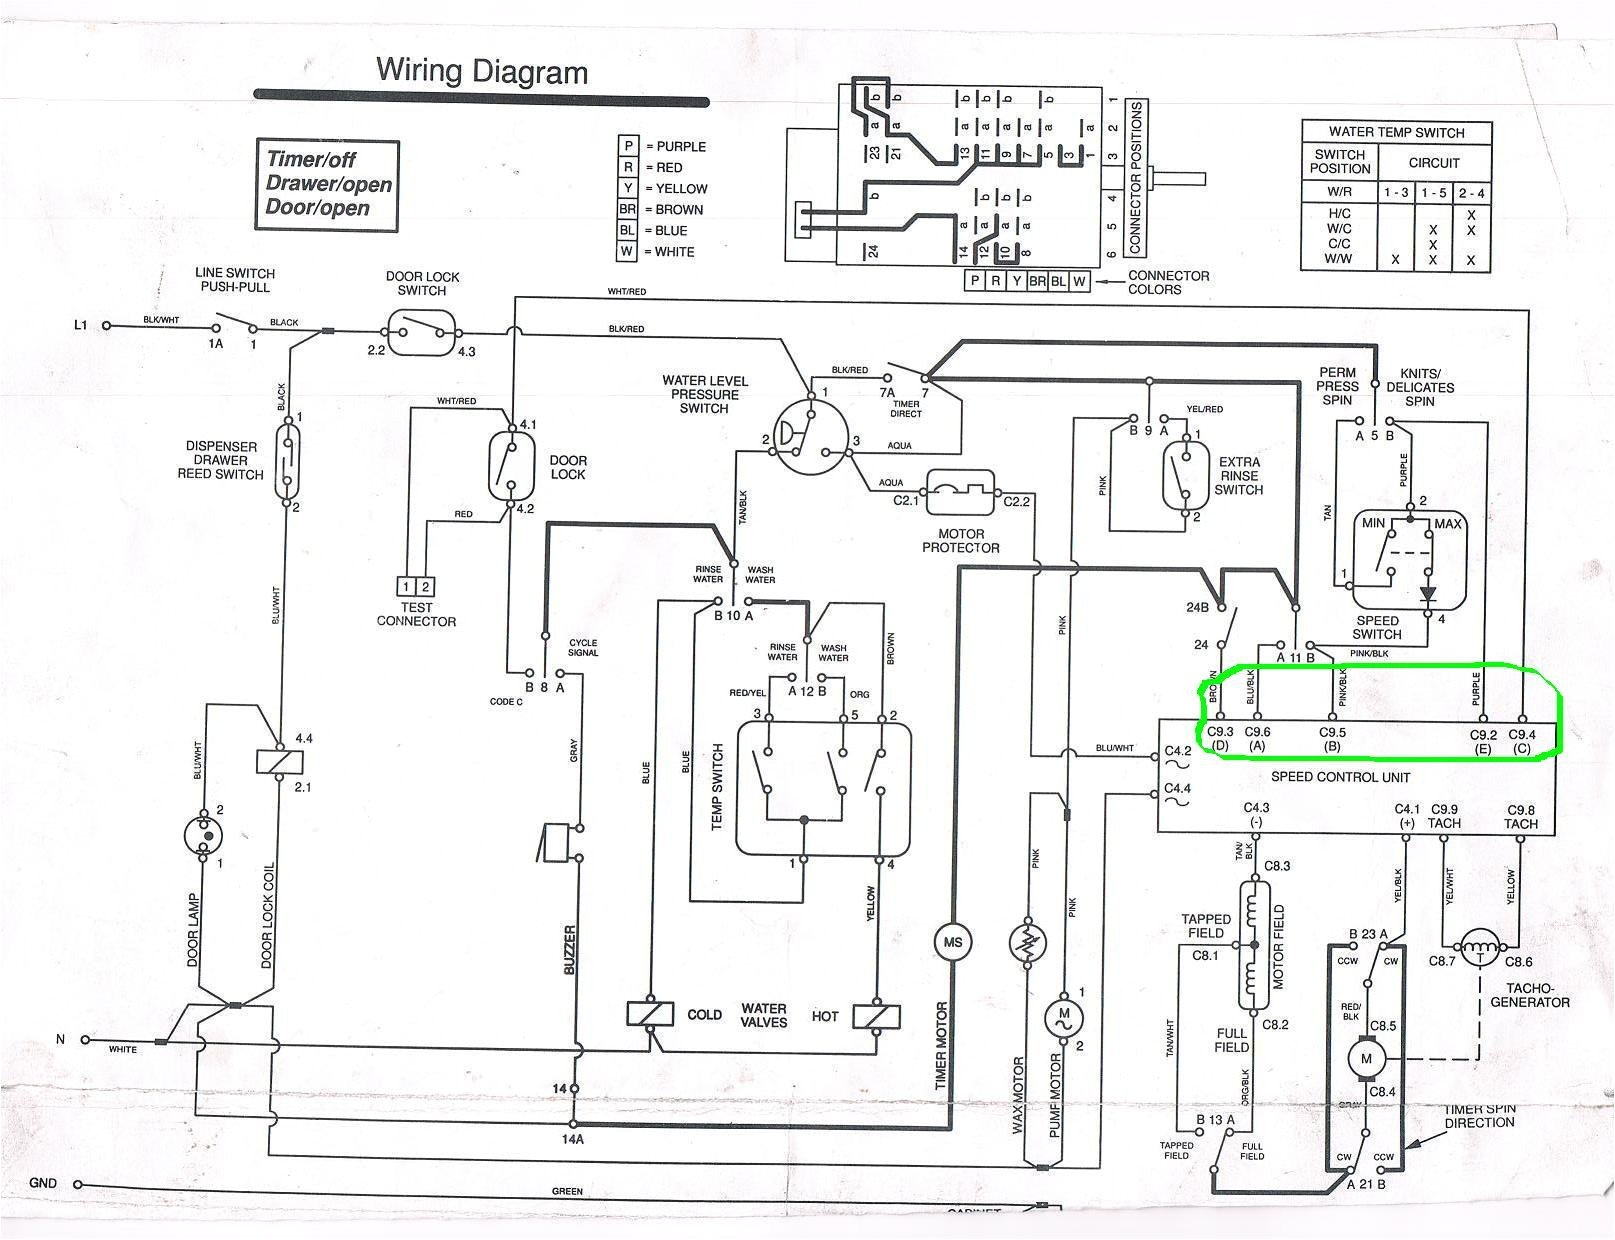 whirlpool washer motor wiring diagram